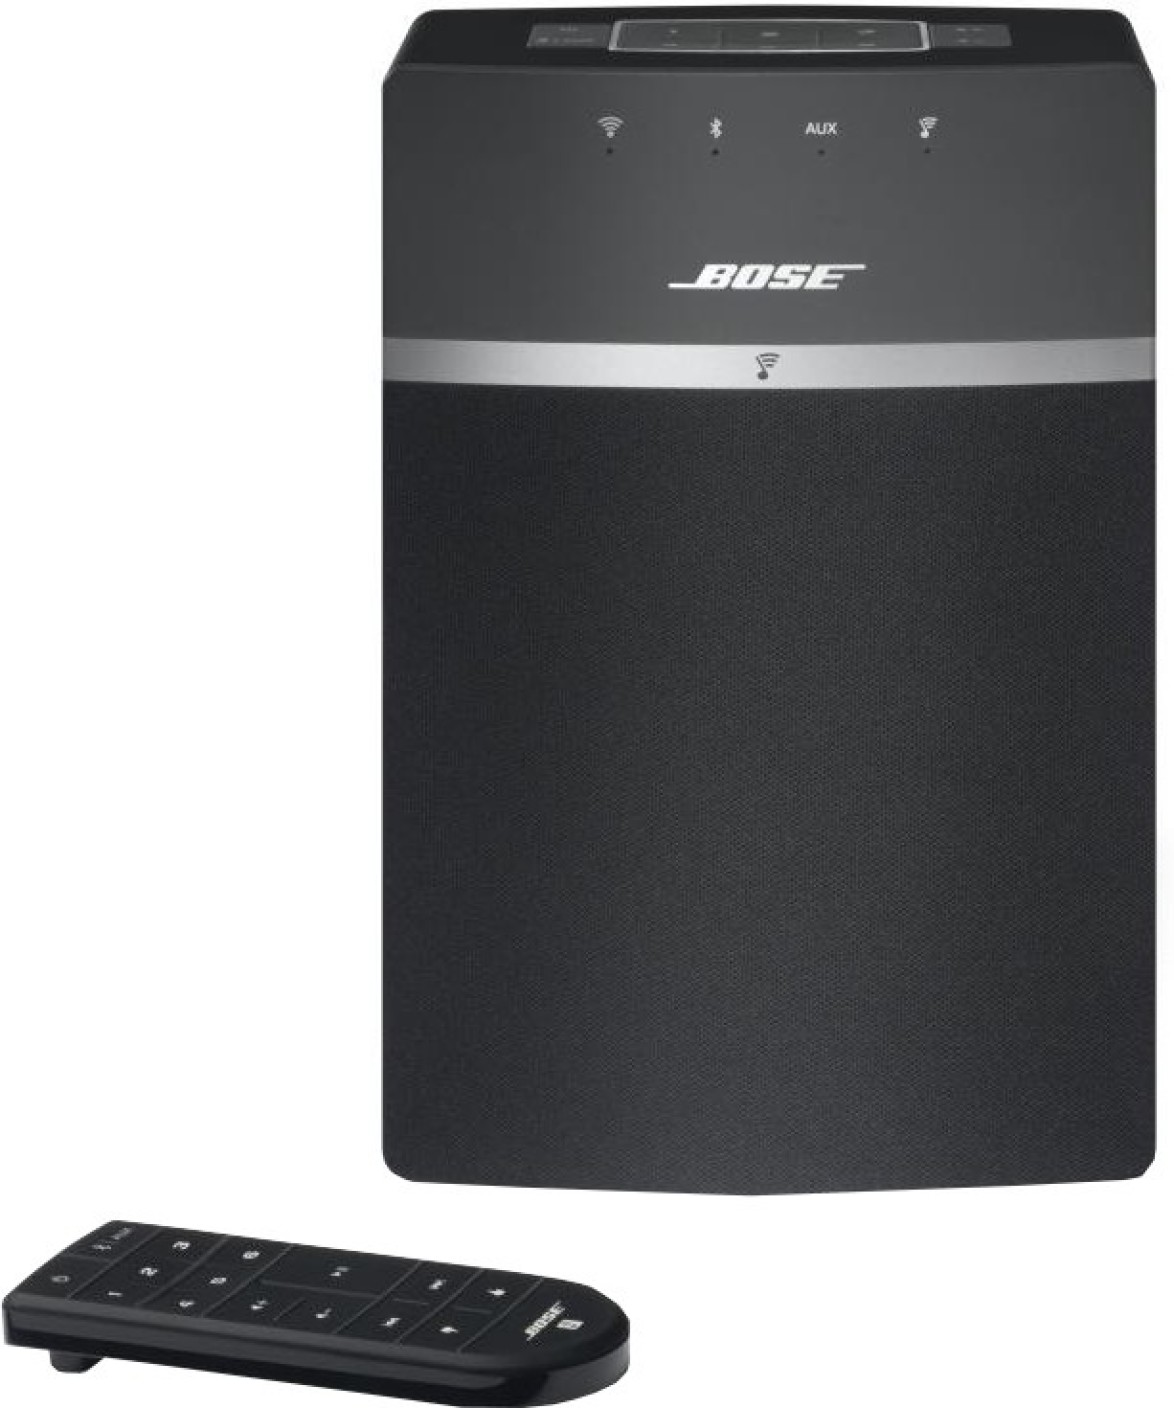 Buy Bose SoundTouch 10 Bluetooth Speaker Online From Flipkart.com